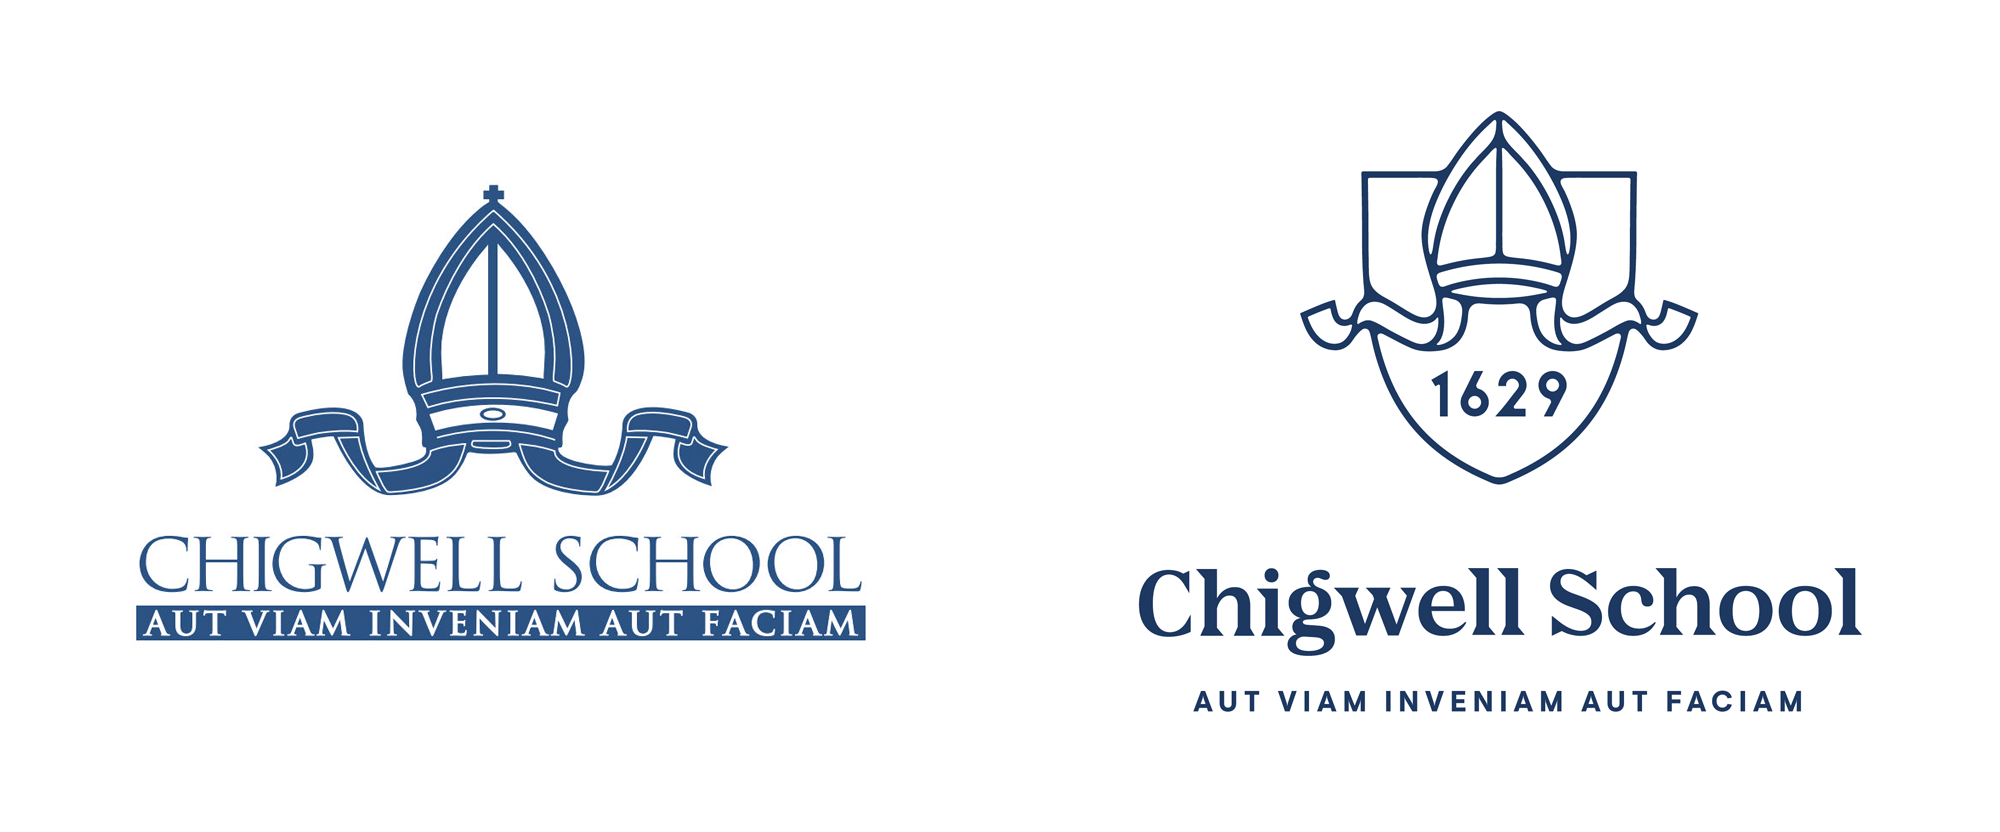 New Logo and Identity for Chigwell School by Nalla